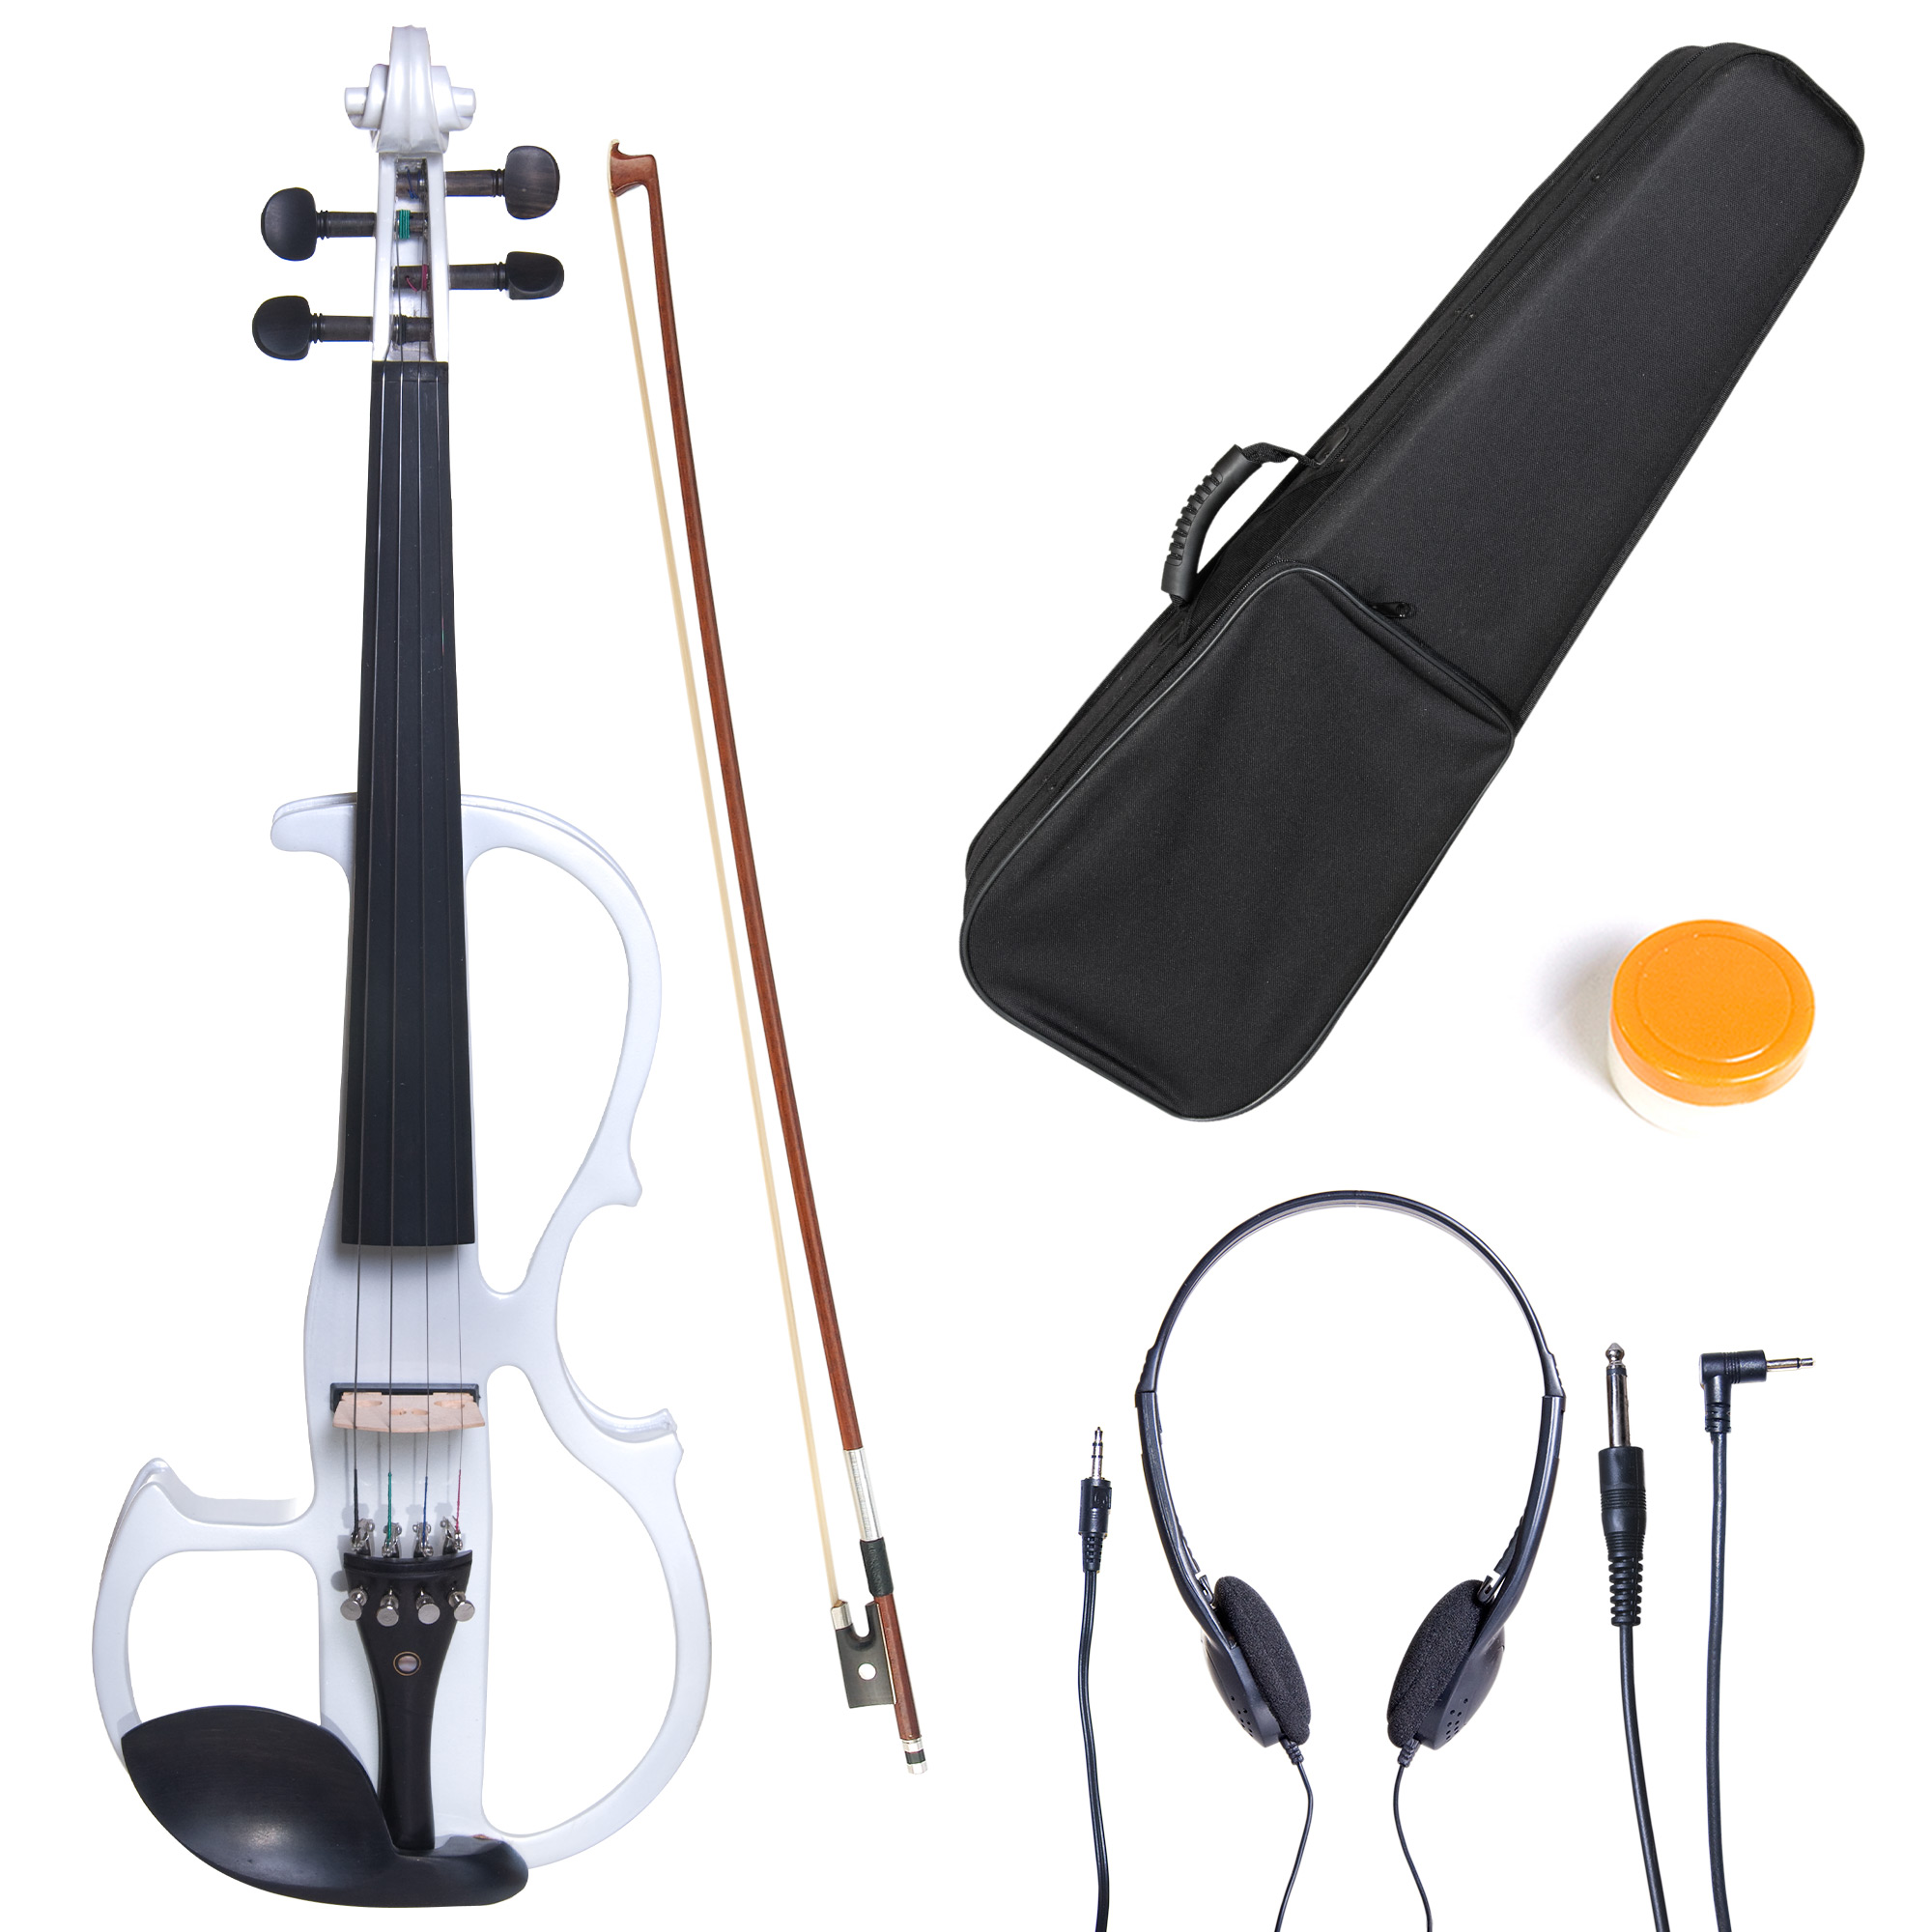 Cecilio 4/4 CEVN-2W Solidwood Pearl White Electric/Silent Violin with Ebony Fittings-Full Size